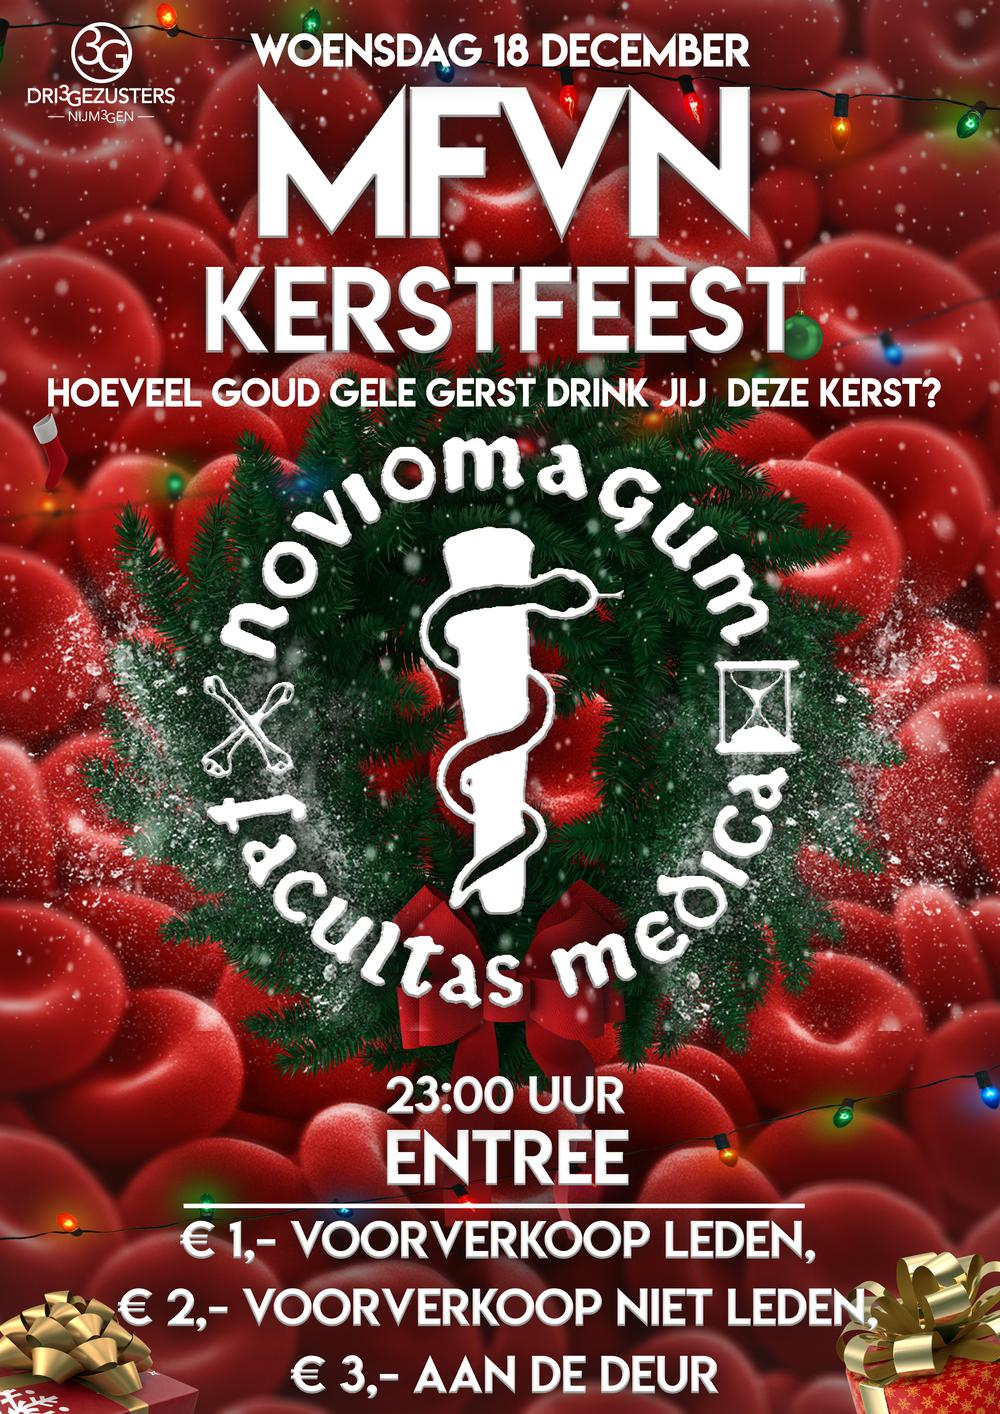 MFVN Kerstfeest